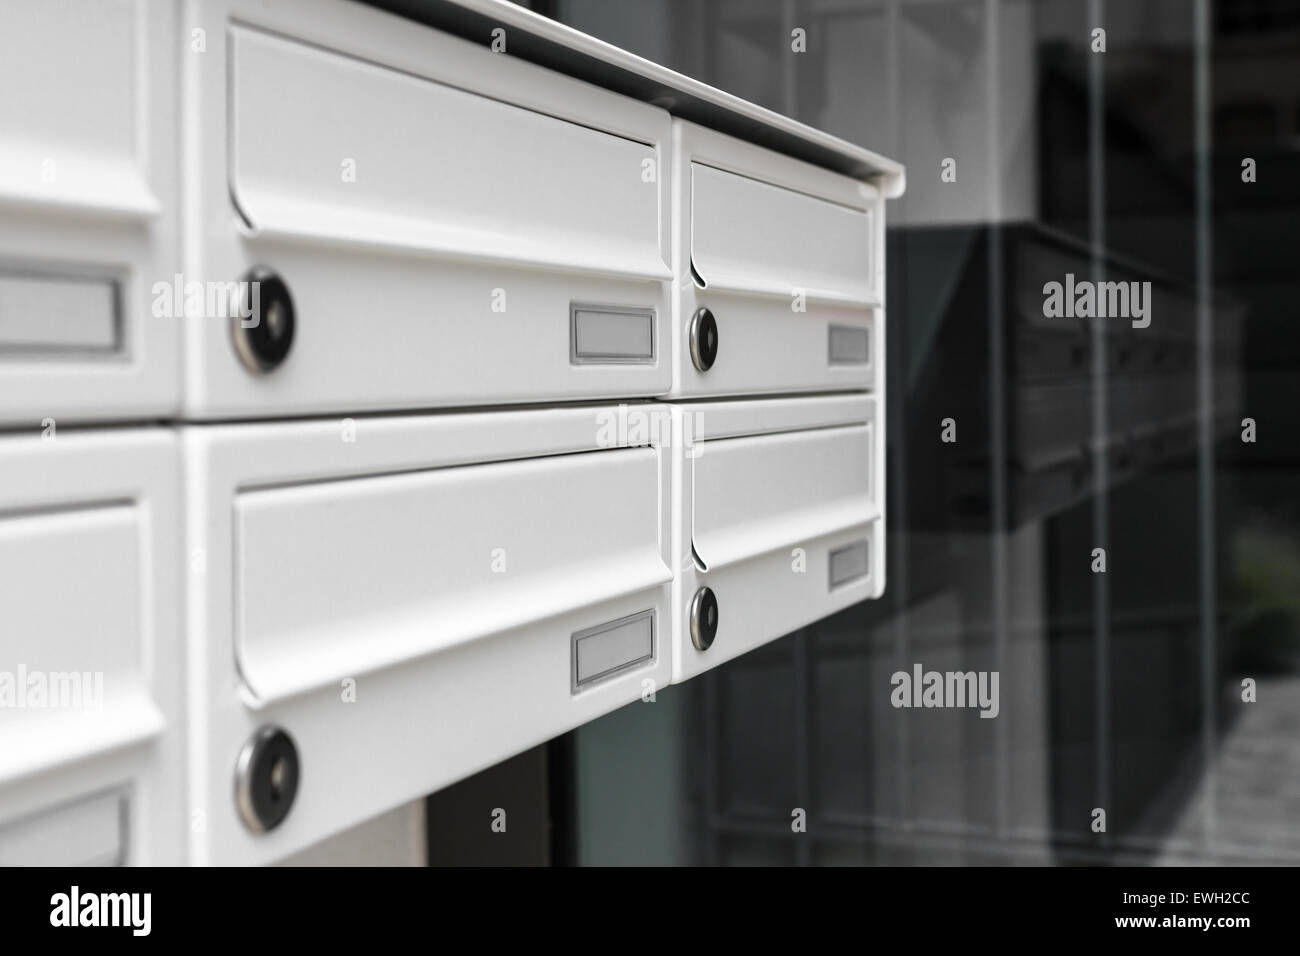 Mailboxes, with a modern design, positioned at the entrance